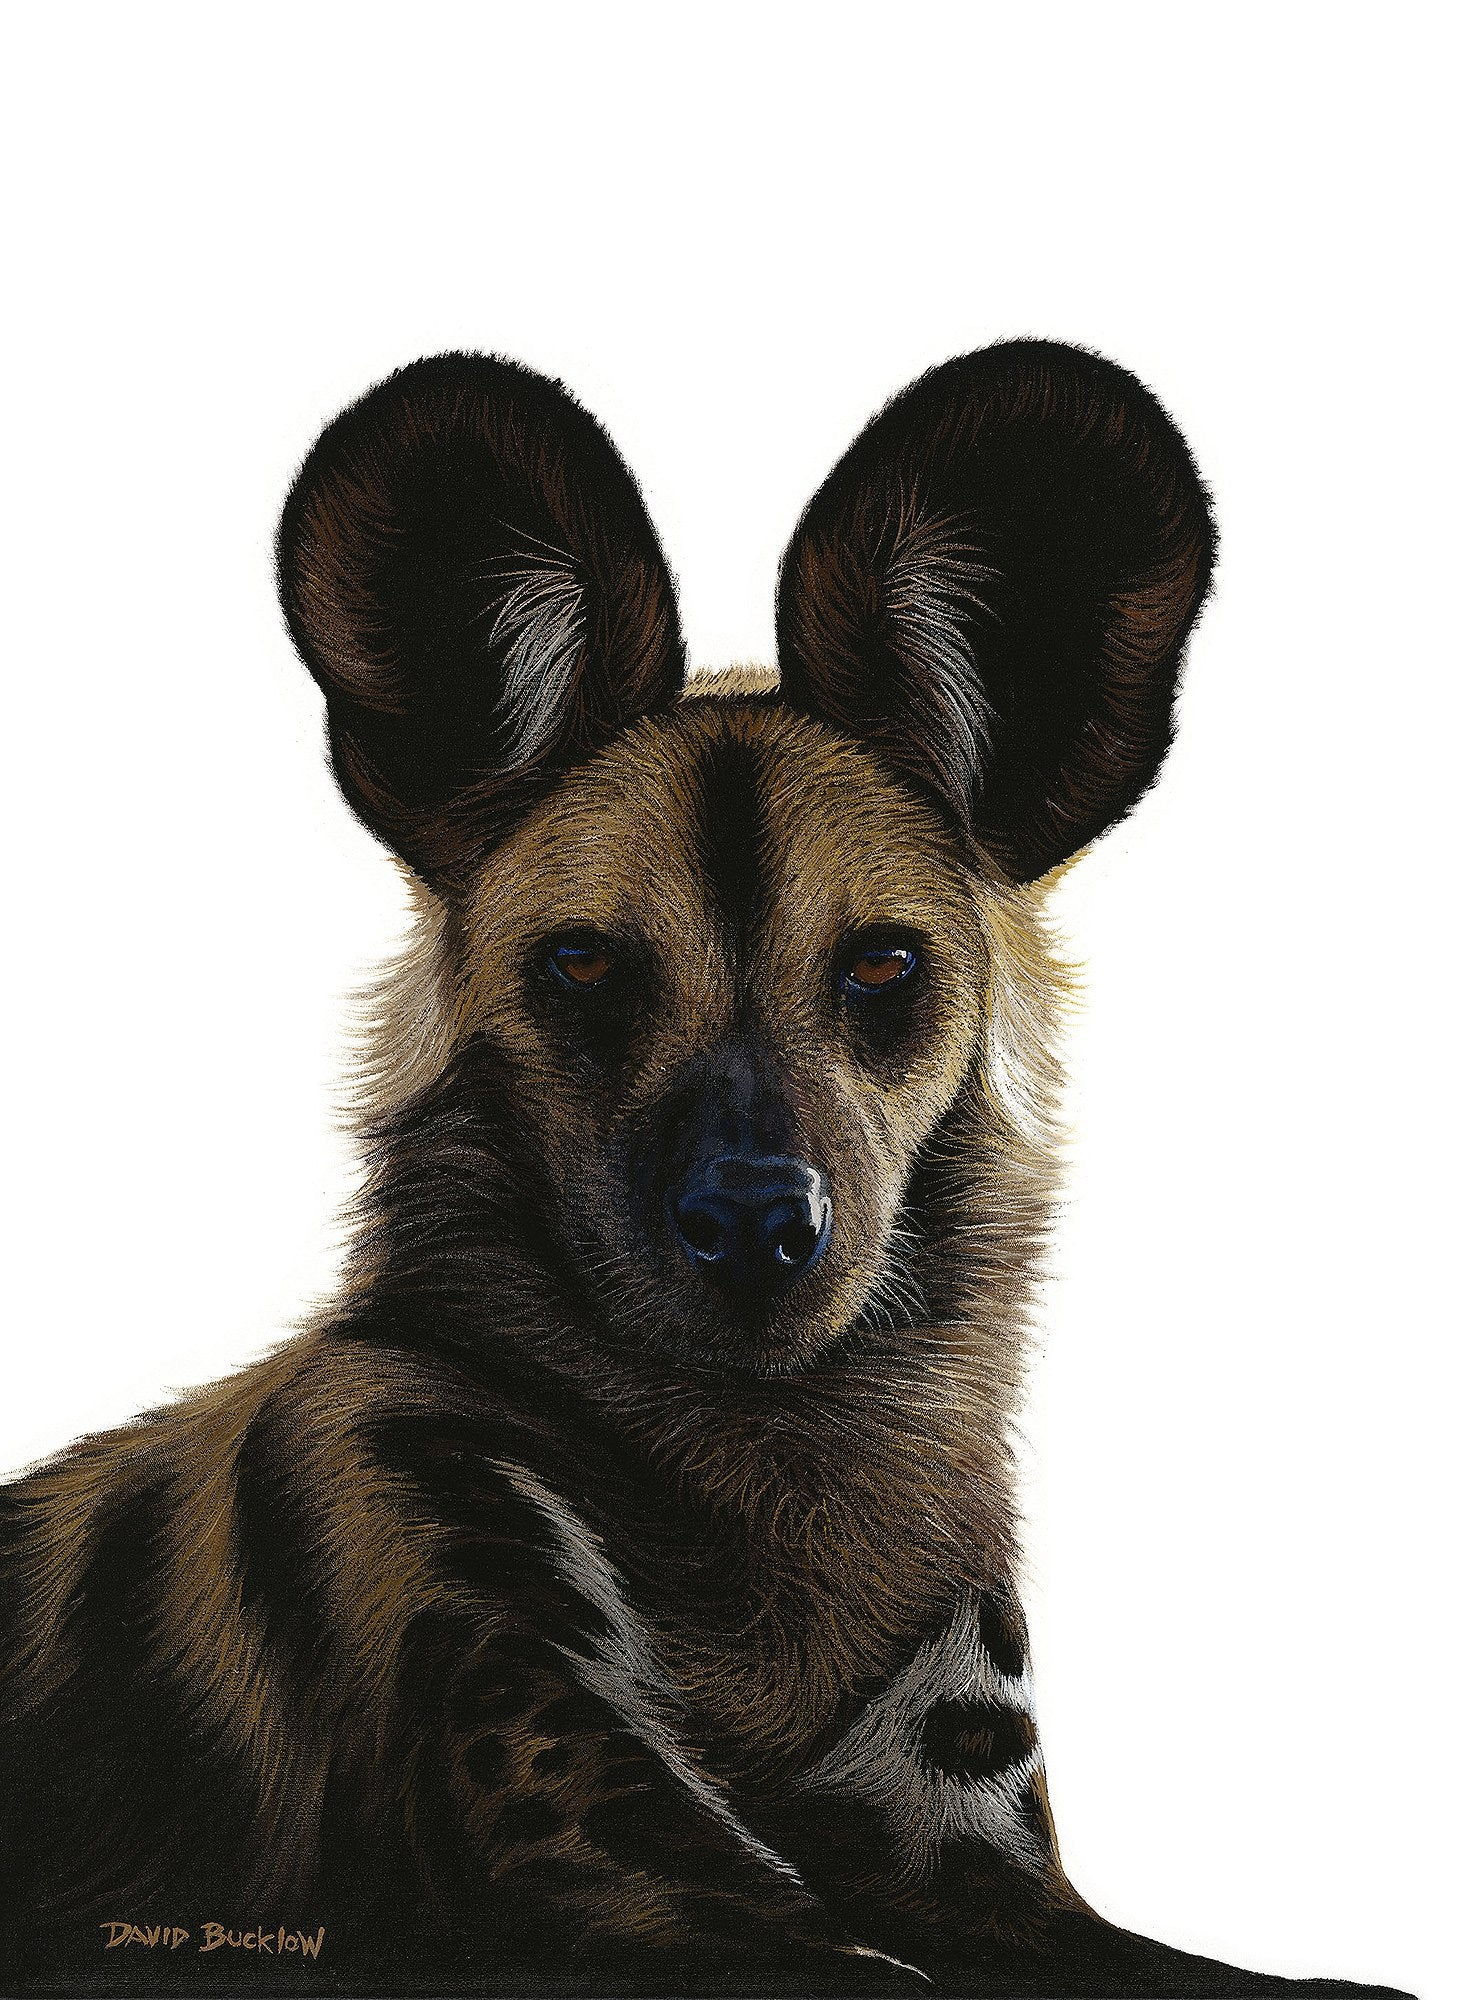 South African Limited Editions by David Bucklow - Leader of the Pack - Wild Dog - Fine Art Portfolio